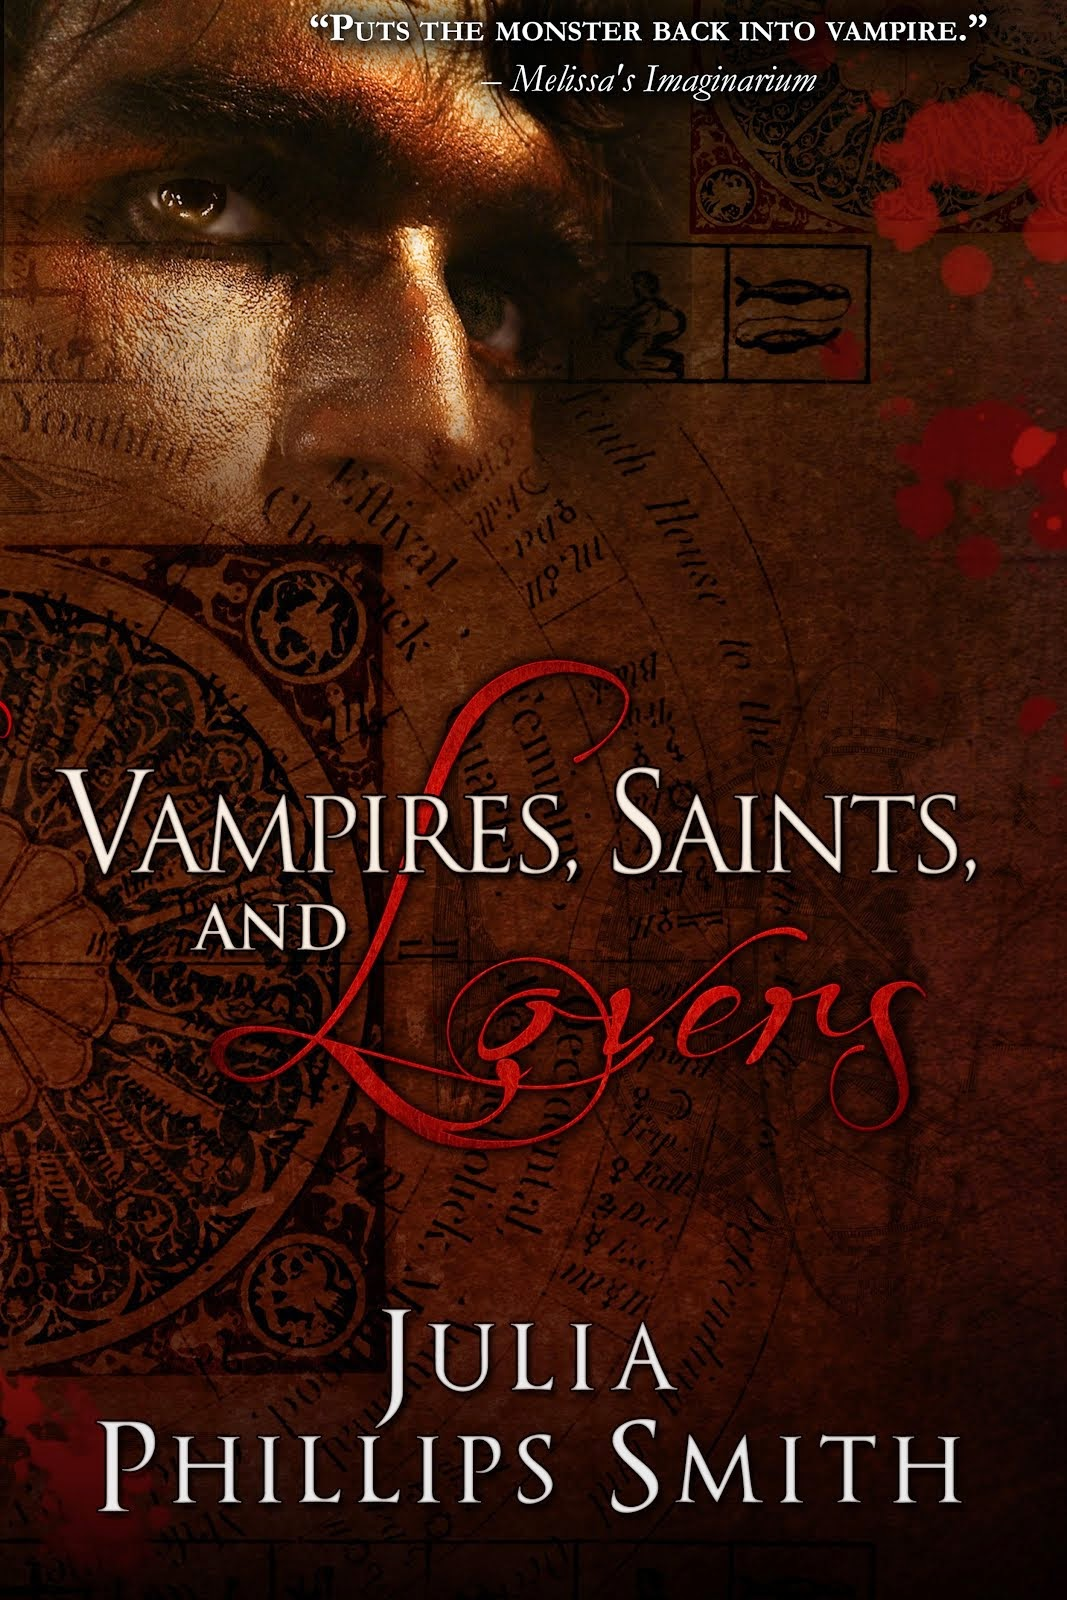 Vampires, Saints and Lovers